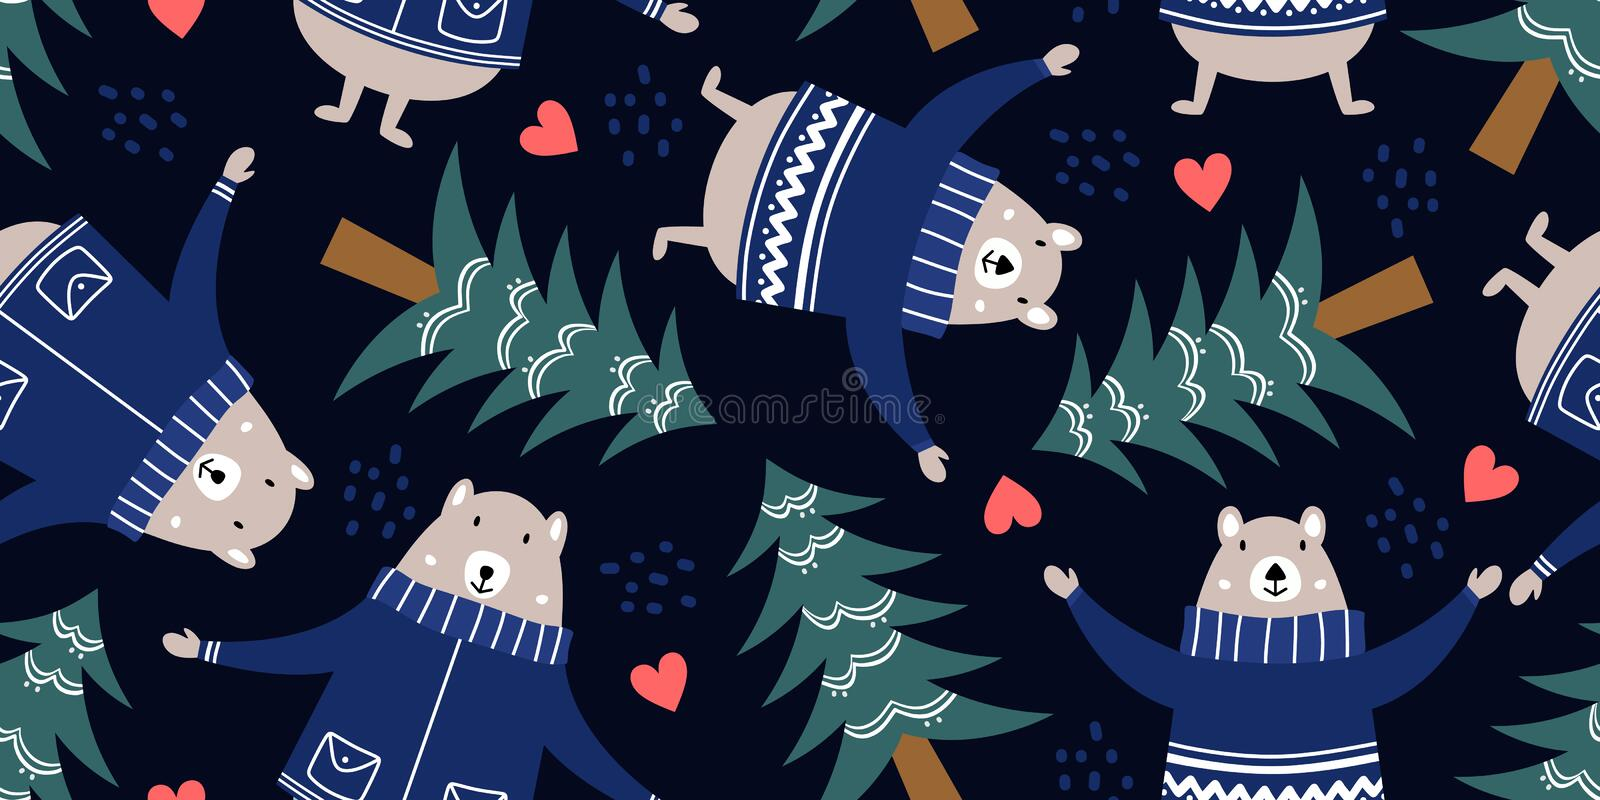 Bear and forest pattern for baby clothes. Hand drawn cute winter animal cartoon scandinavian style vector illustration